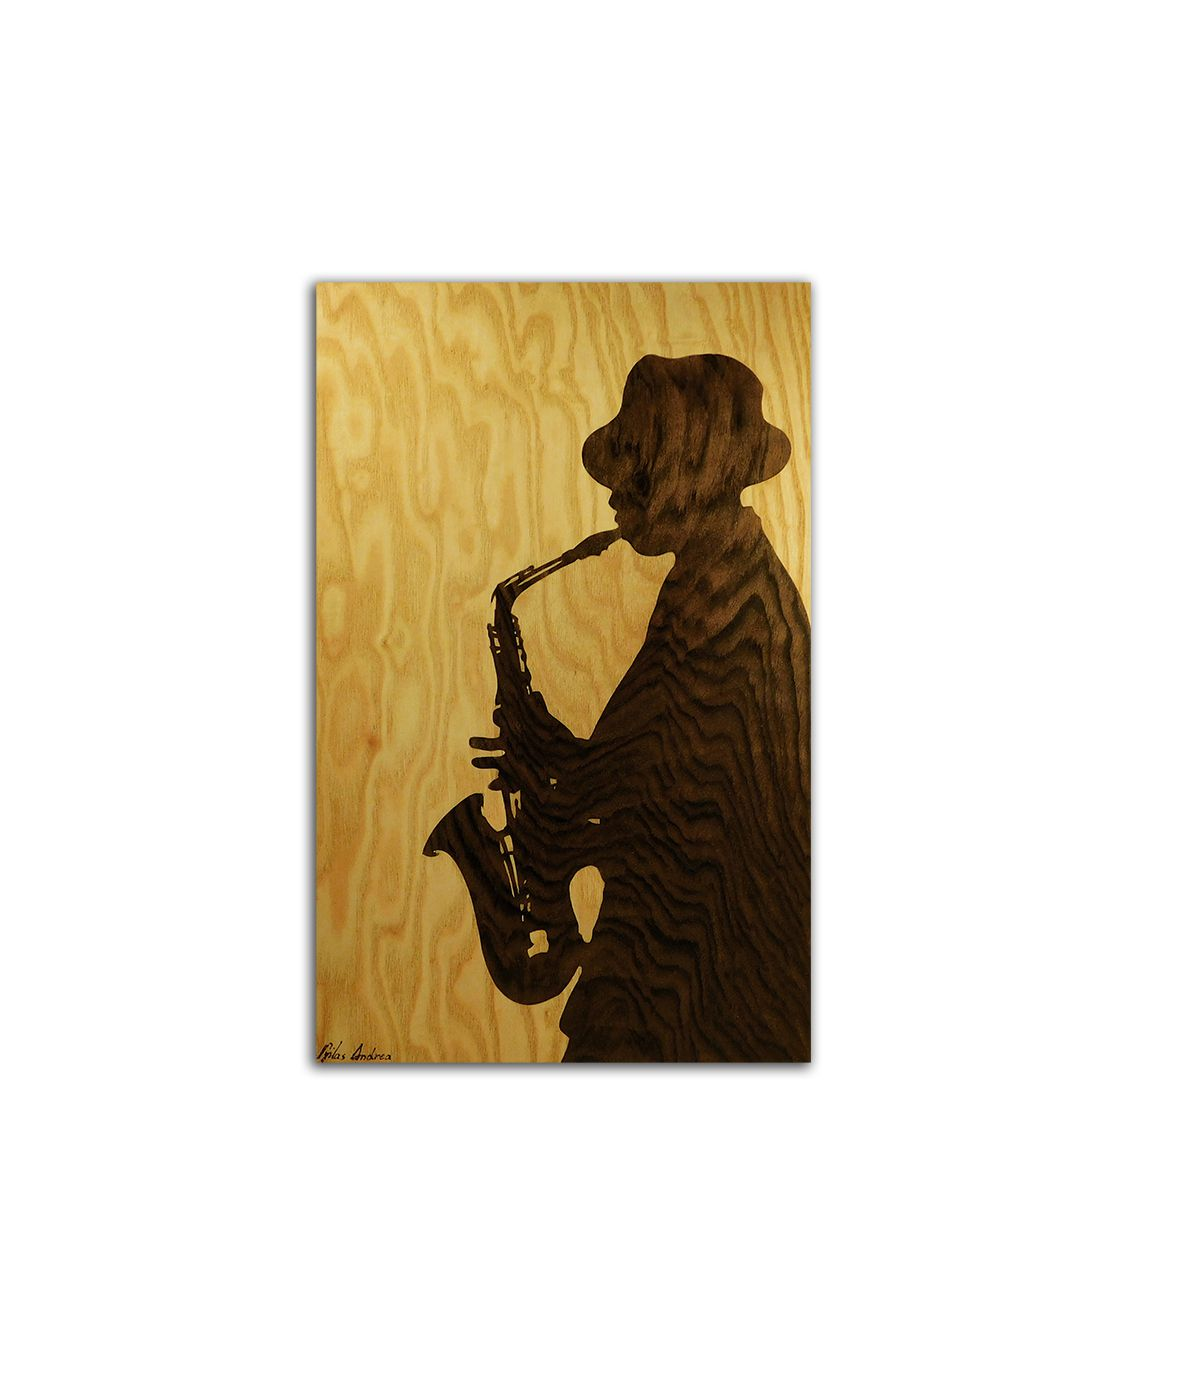 mood chill saxophone jazz coffee music light wood nice